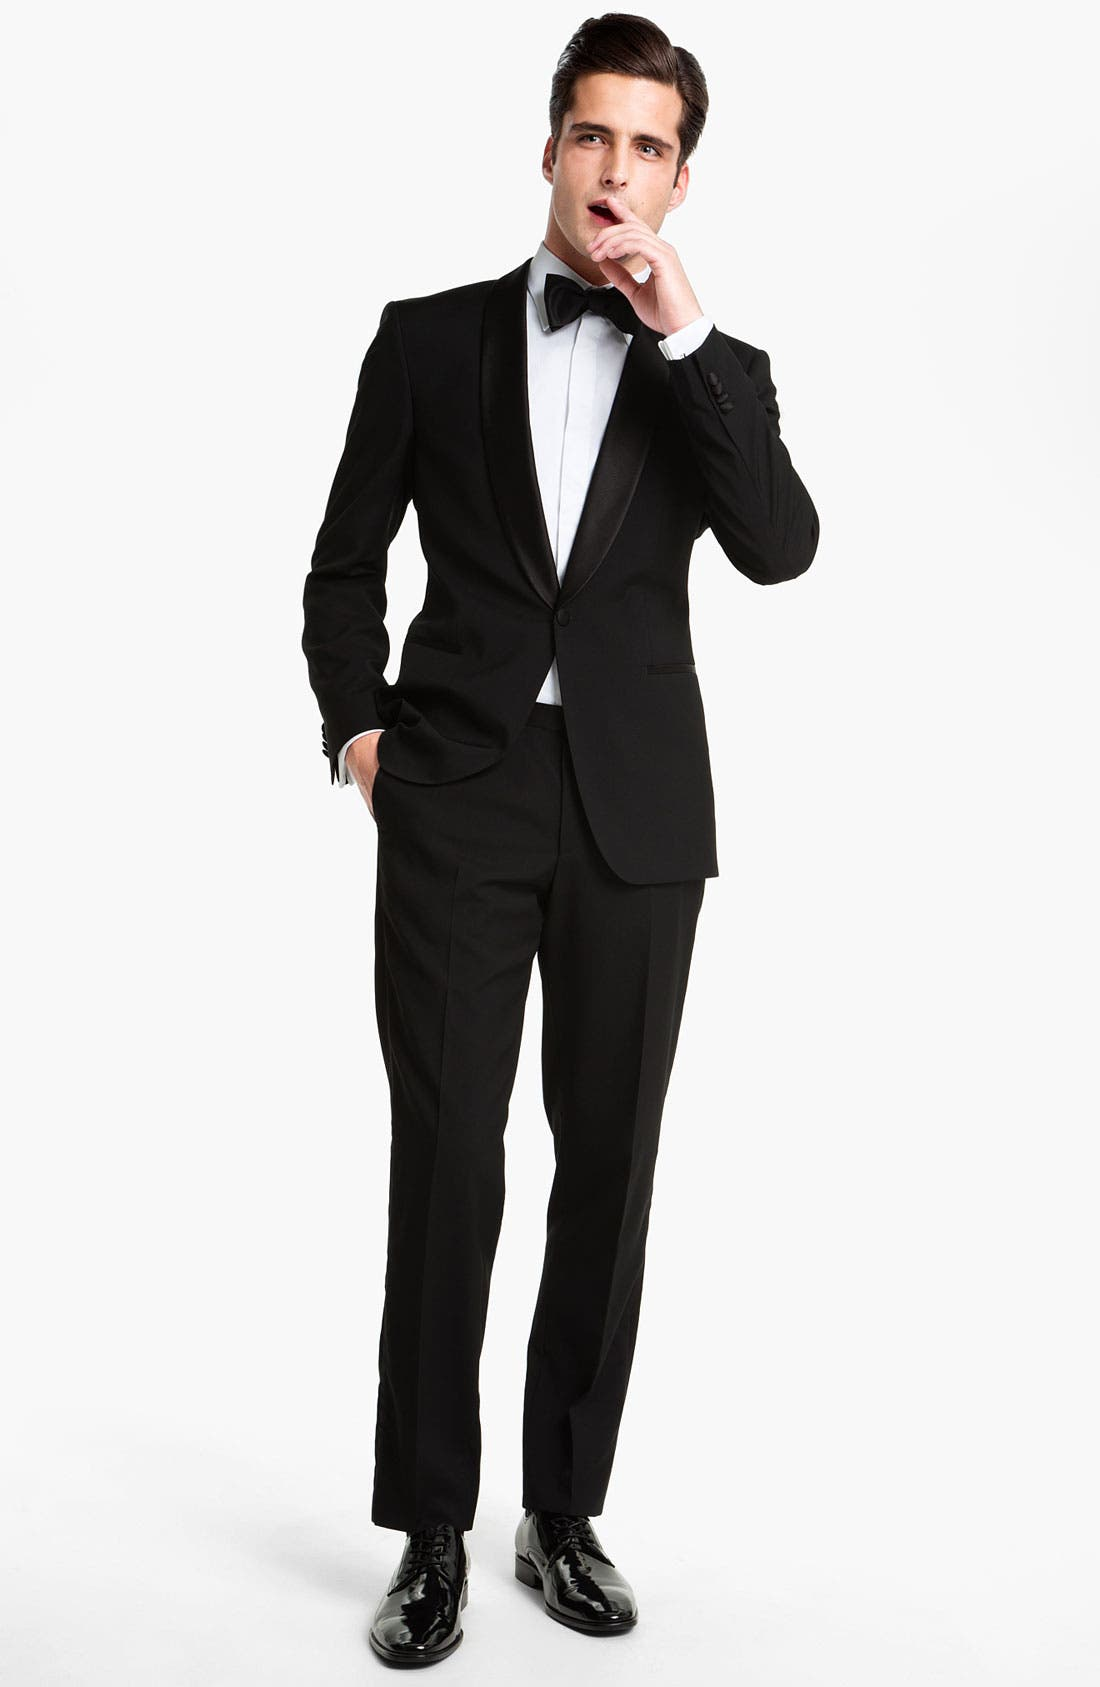 ZZDNUHUGO BOSS BOSS 'Sky Gala' Shawl Lapel Tuxedo, Main, color, 001